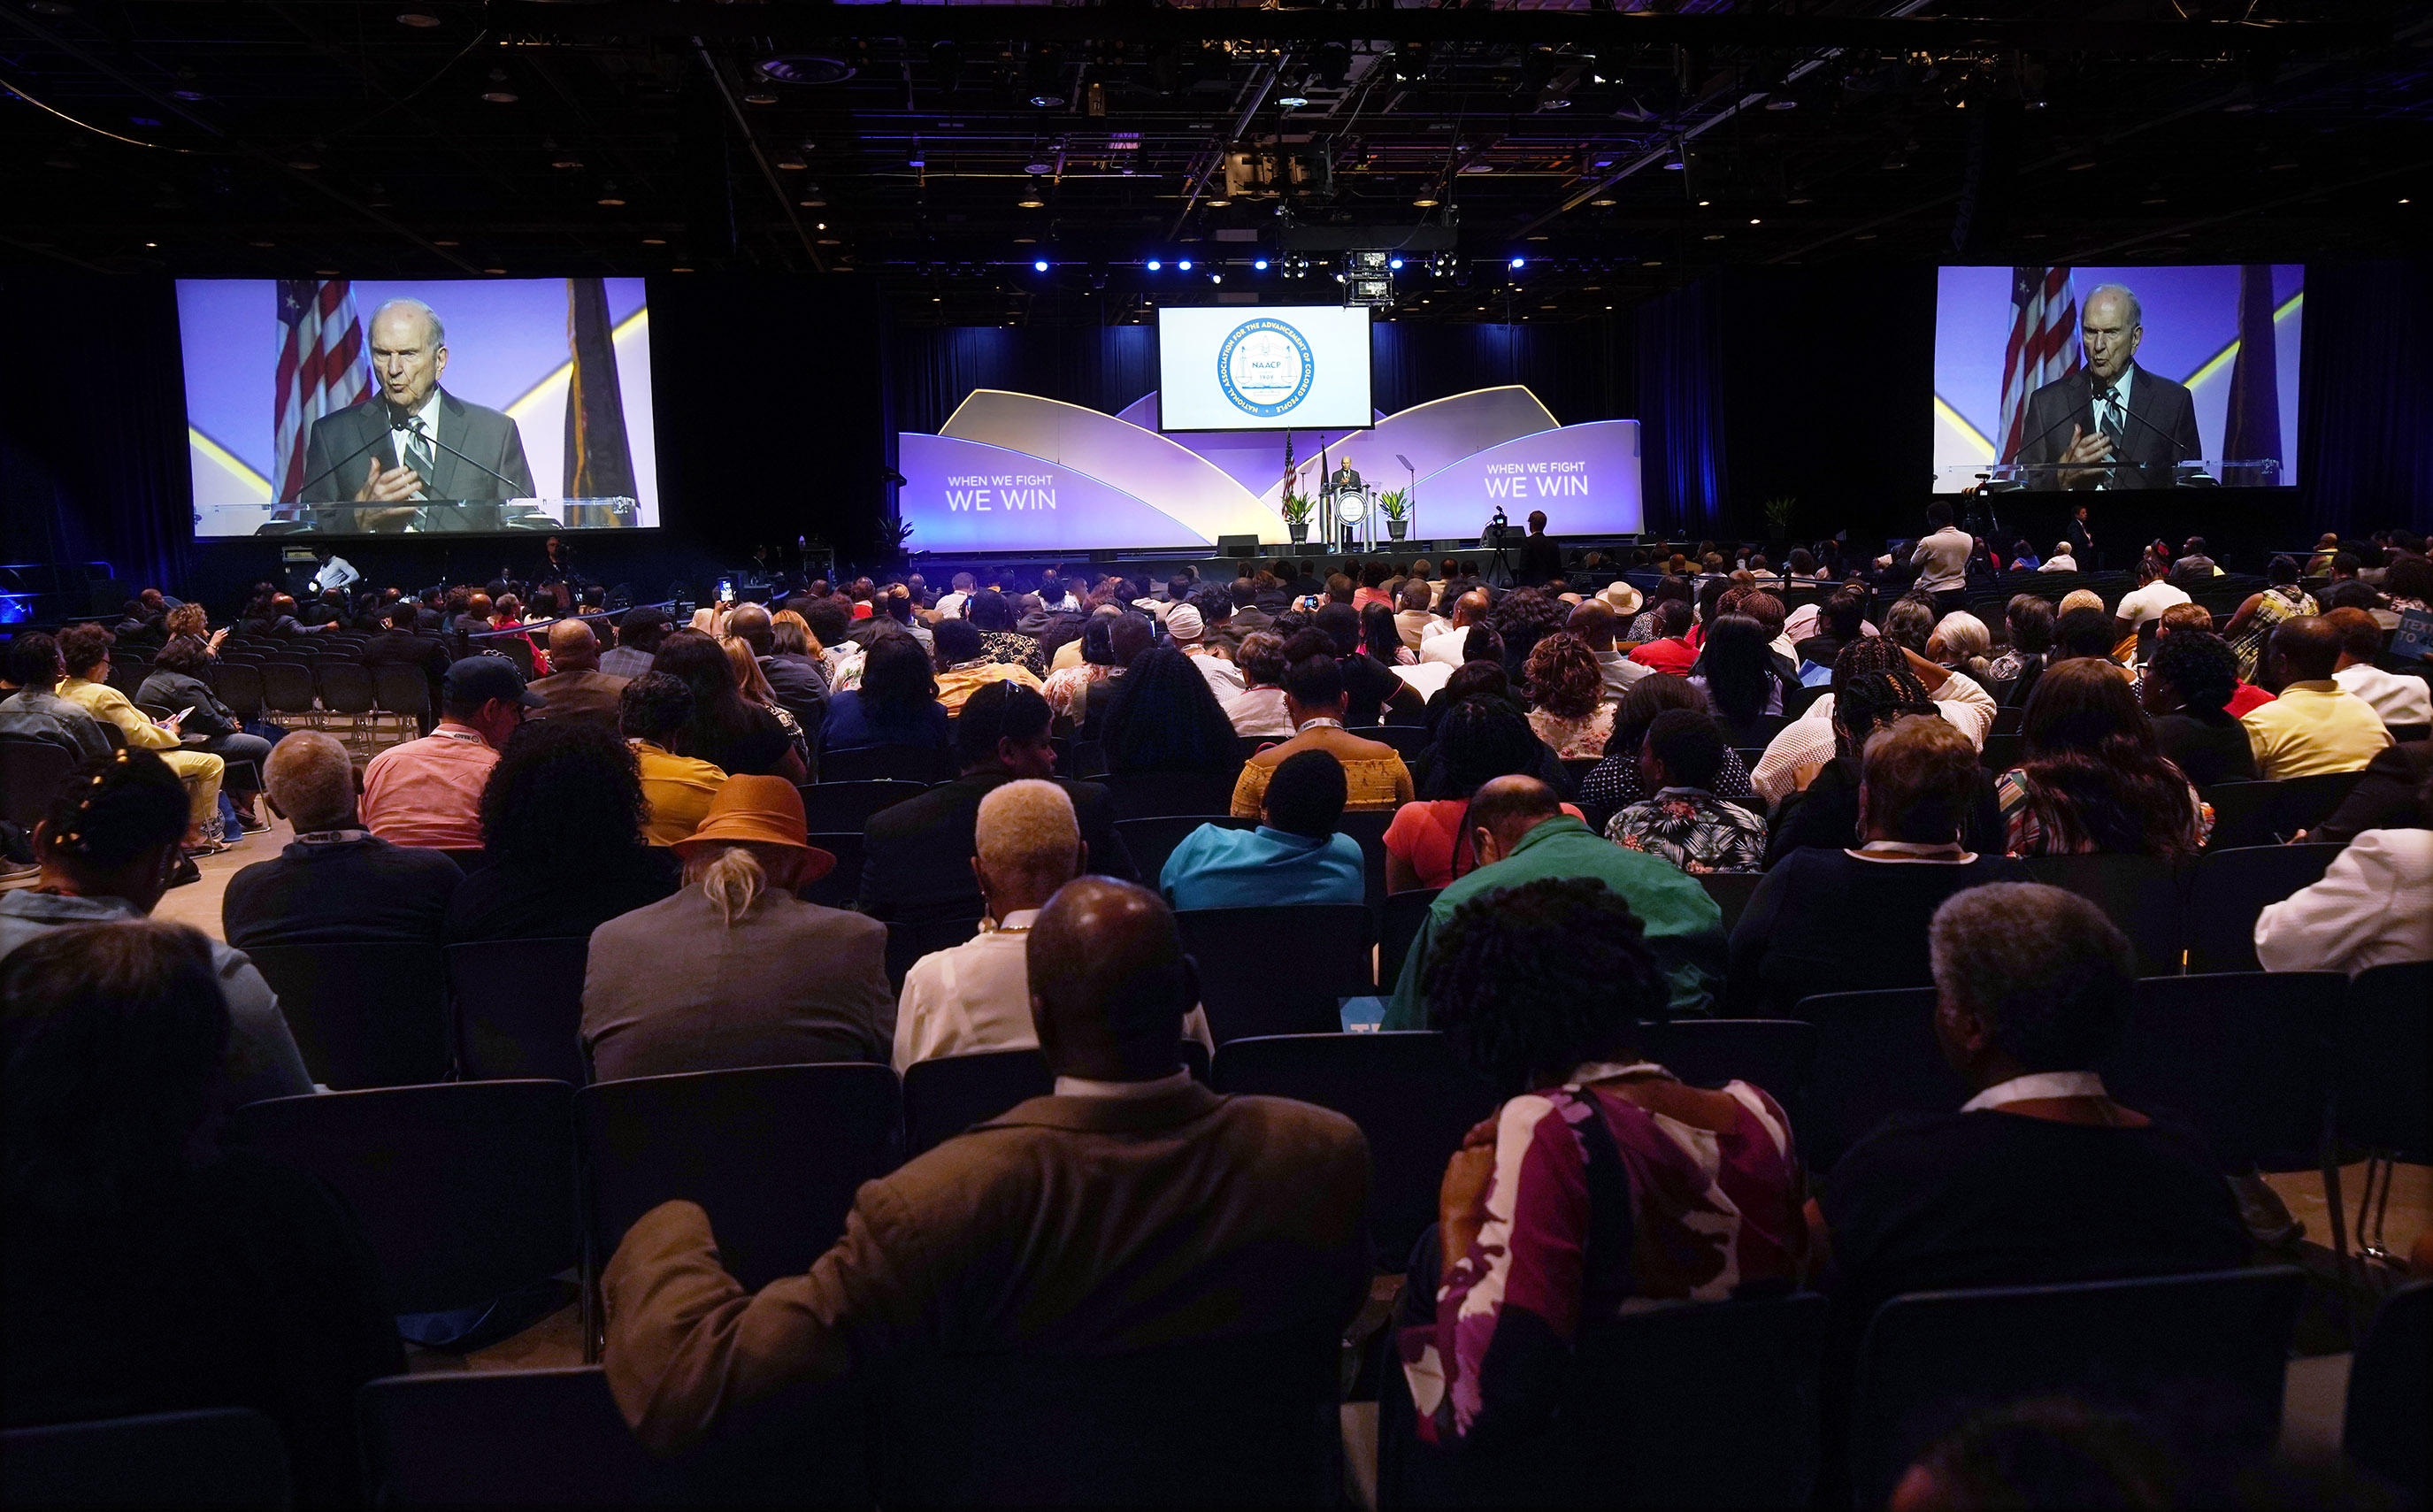 President Russell M. Nelson of The Church of Jesus Christ of Latter-day Saints speaks at the 110th annual national convention for the National Association for the Advancement of Colored People in Detroit on Sunday, July 21, 2019.